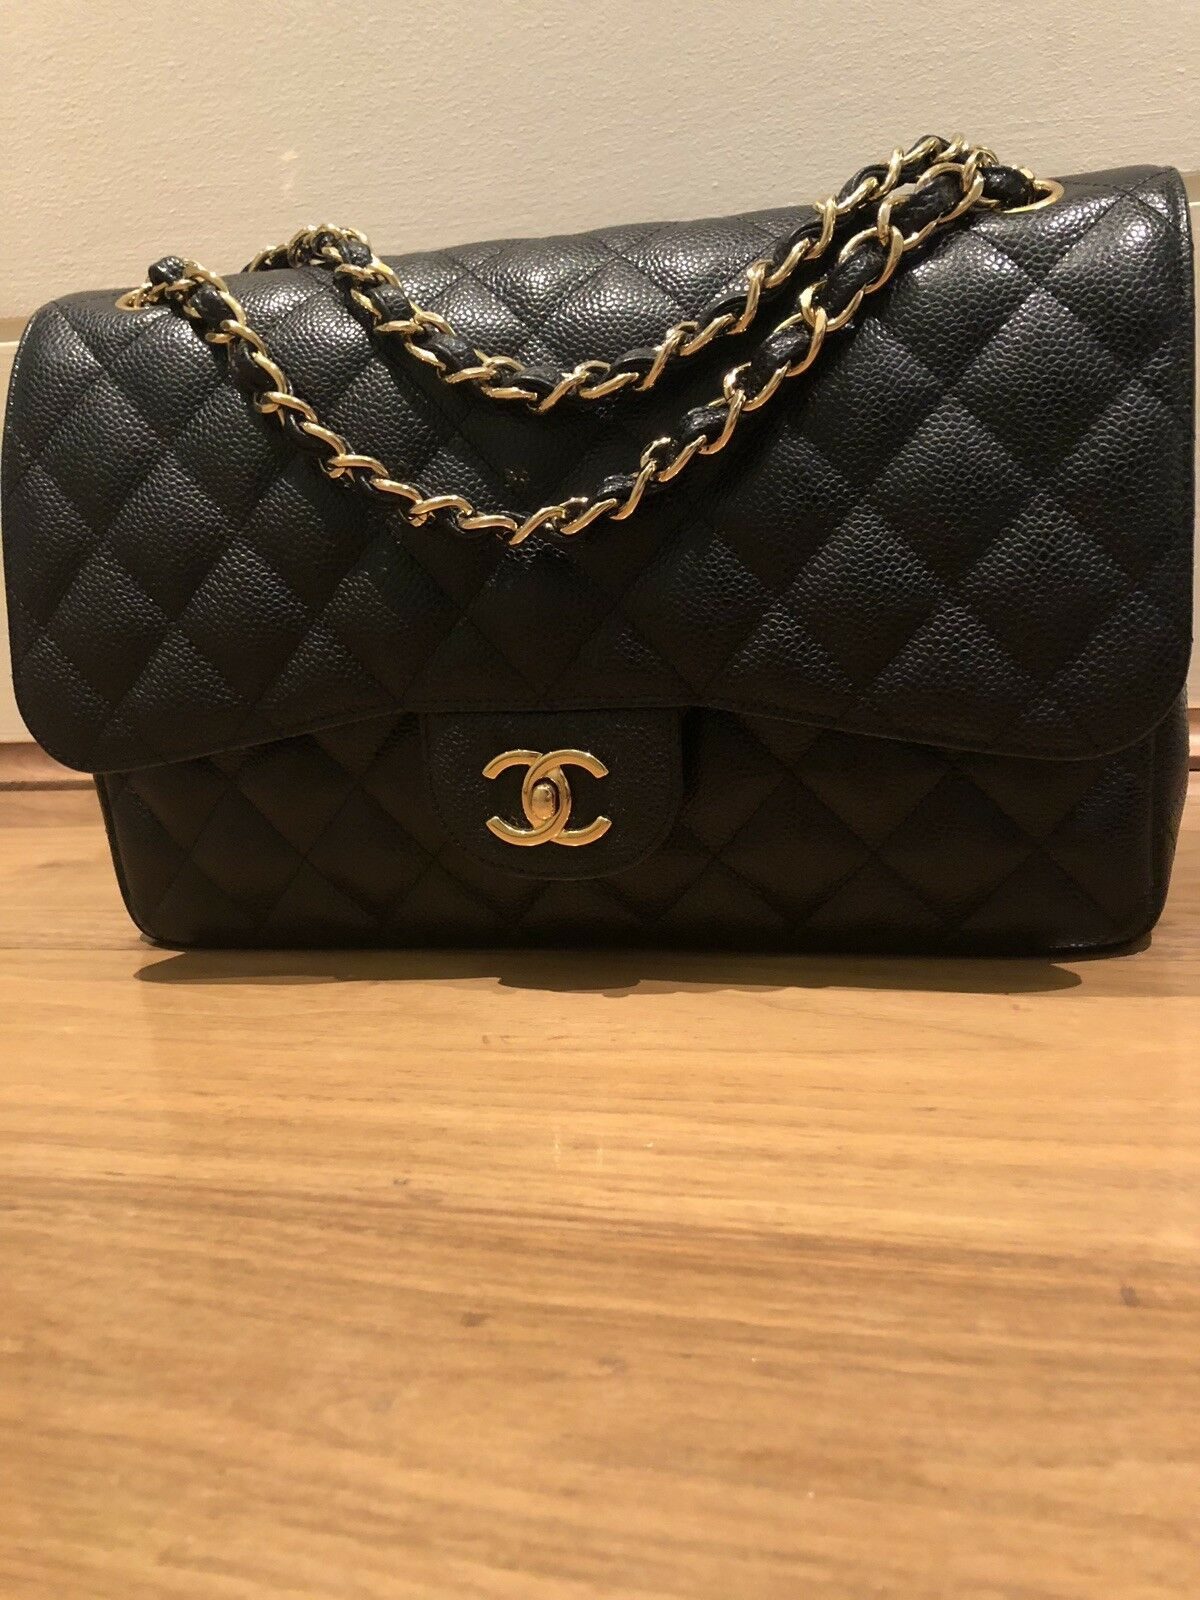 Chanel Large Clasic Flap Caviar Black Gold H W Chanel Black Bags